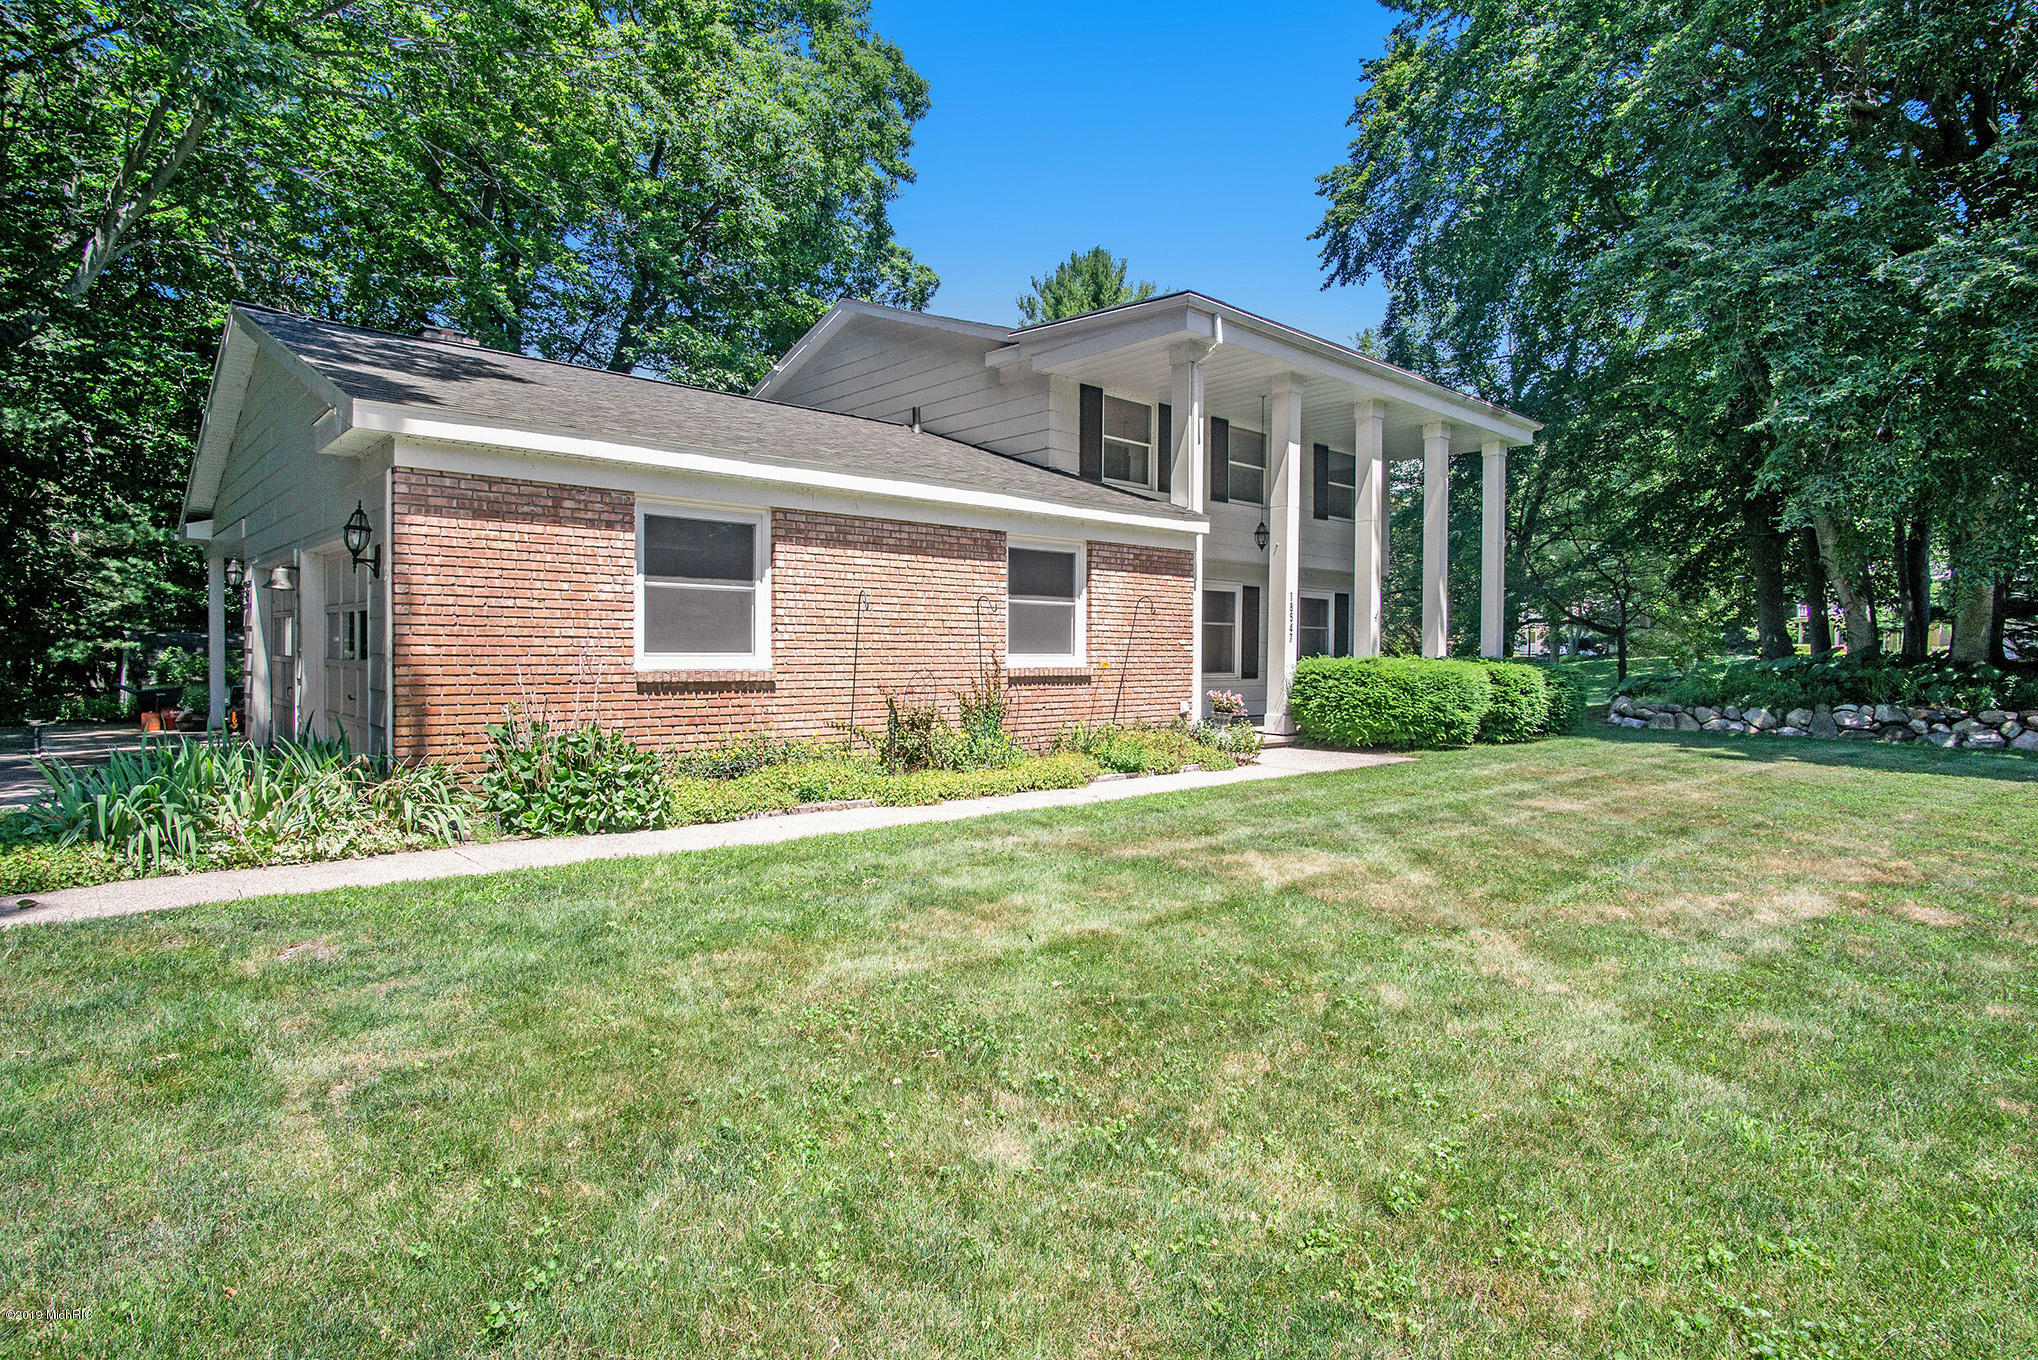 18547 Pawnee Drive, Spring Lake, MI 49456, MLS # 19033373 | Greenridge  Realty, Inc